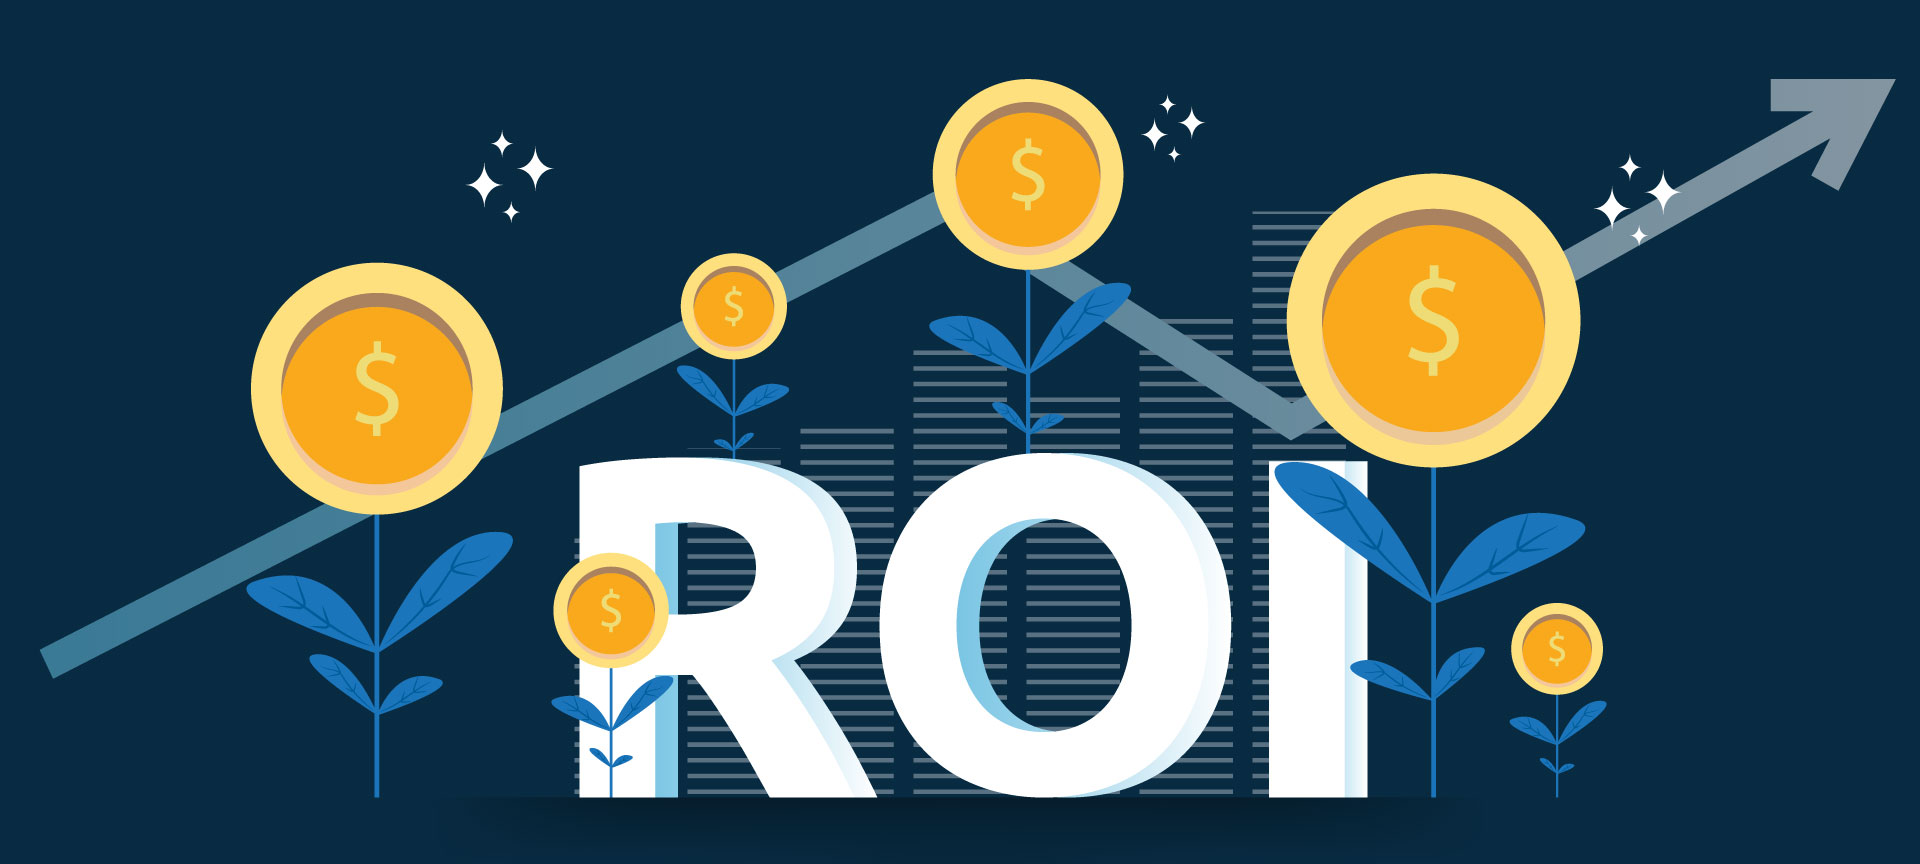 How does Event Marketing Provide Higher ROI